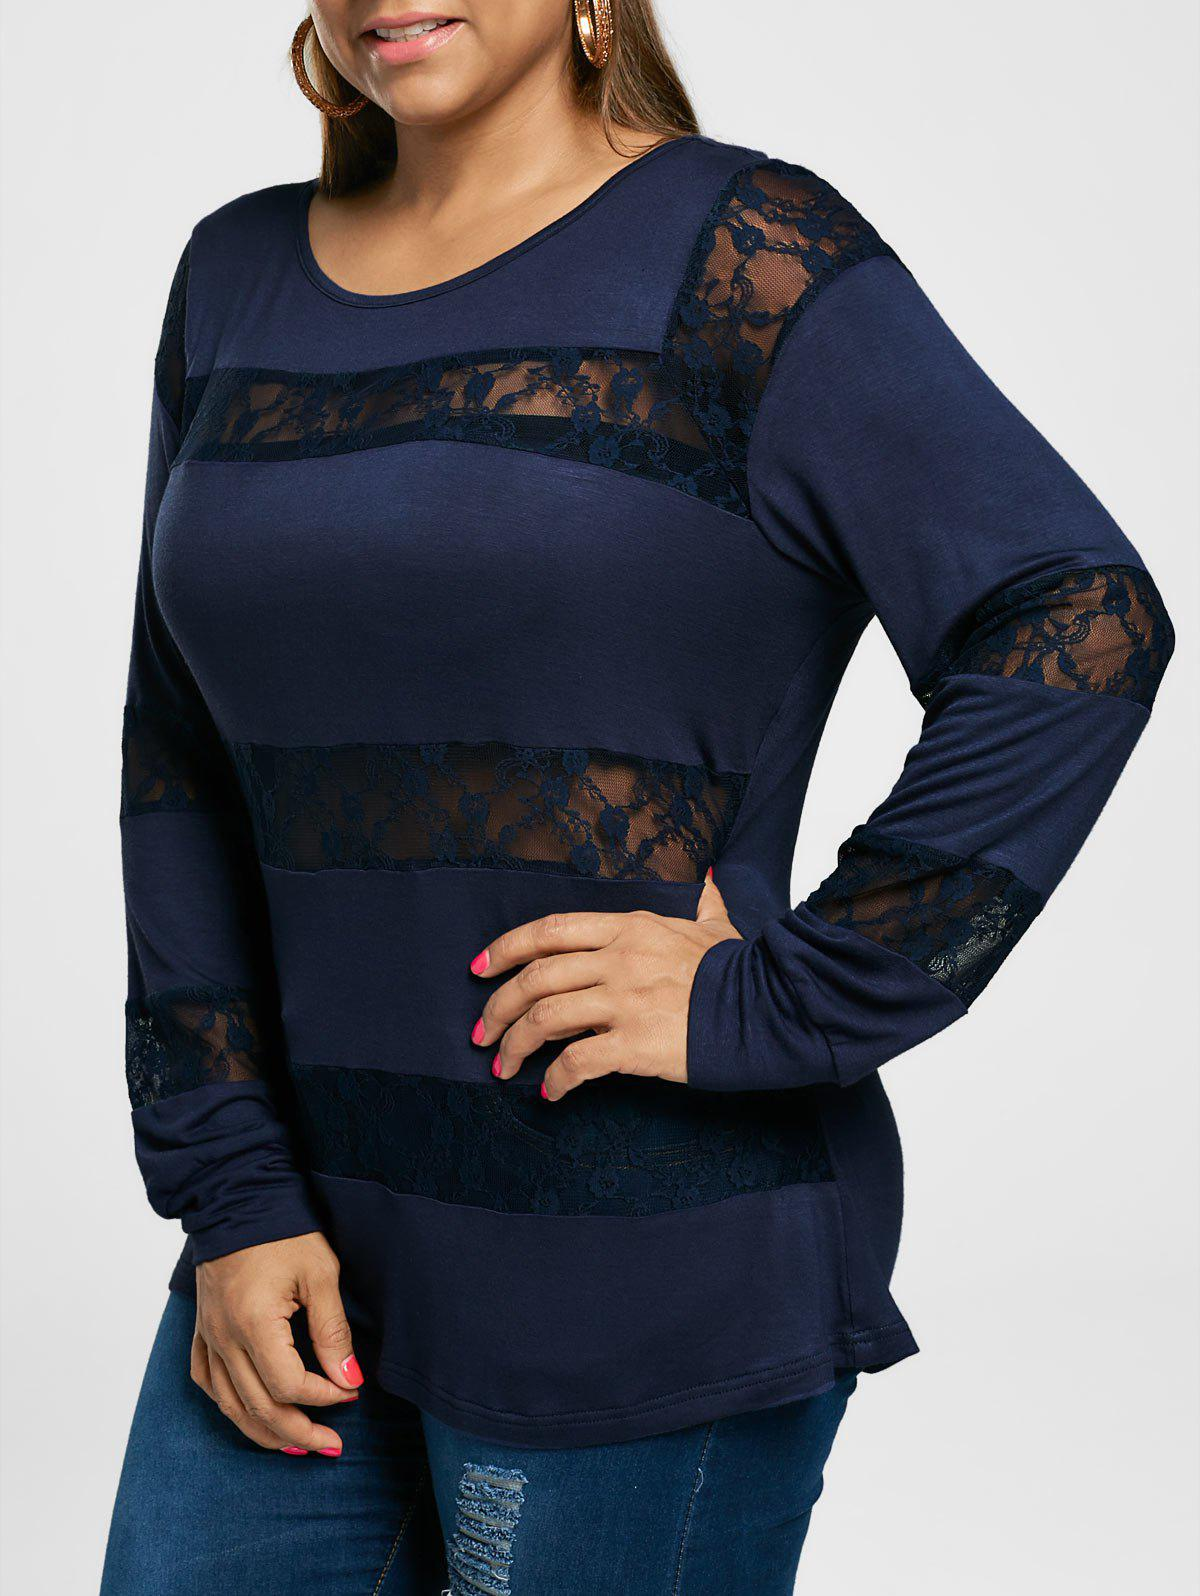 Plus Size Lace Insert Long Sleeve TeeWOMEN<br><br>Size: 4XL; Color: PURPLISH BLUE; Material: Rayon; Shirt Length: Long; Sleeve Length: Full; Collar: Scoop Neck; Style: Casual; Season: Summer; Pattern Type: Solid; Weight: 0.2500kg; Package Contents: 1 x Top;